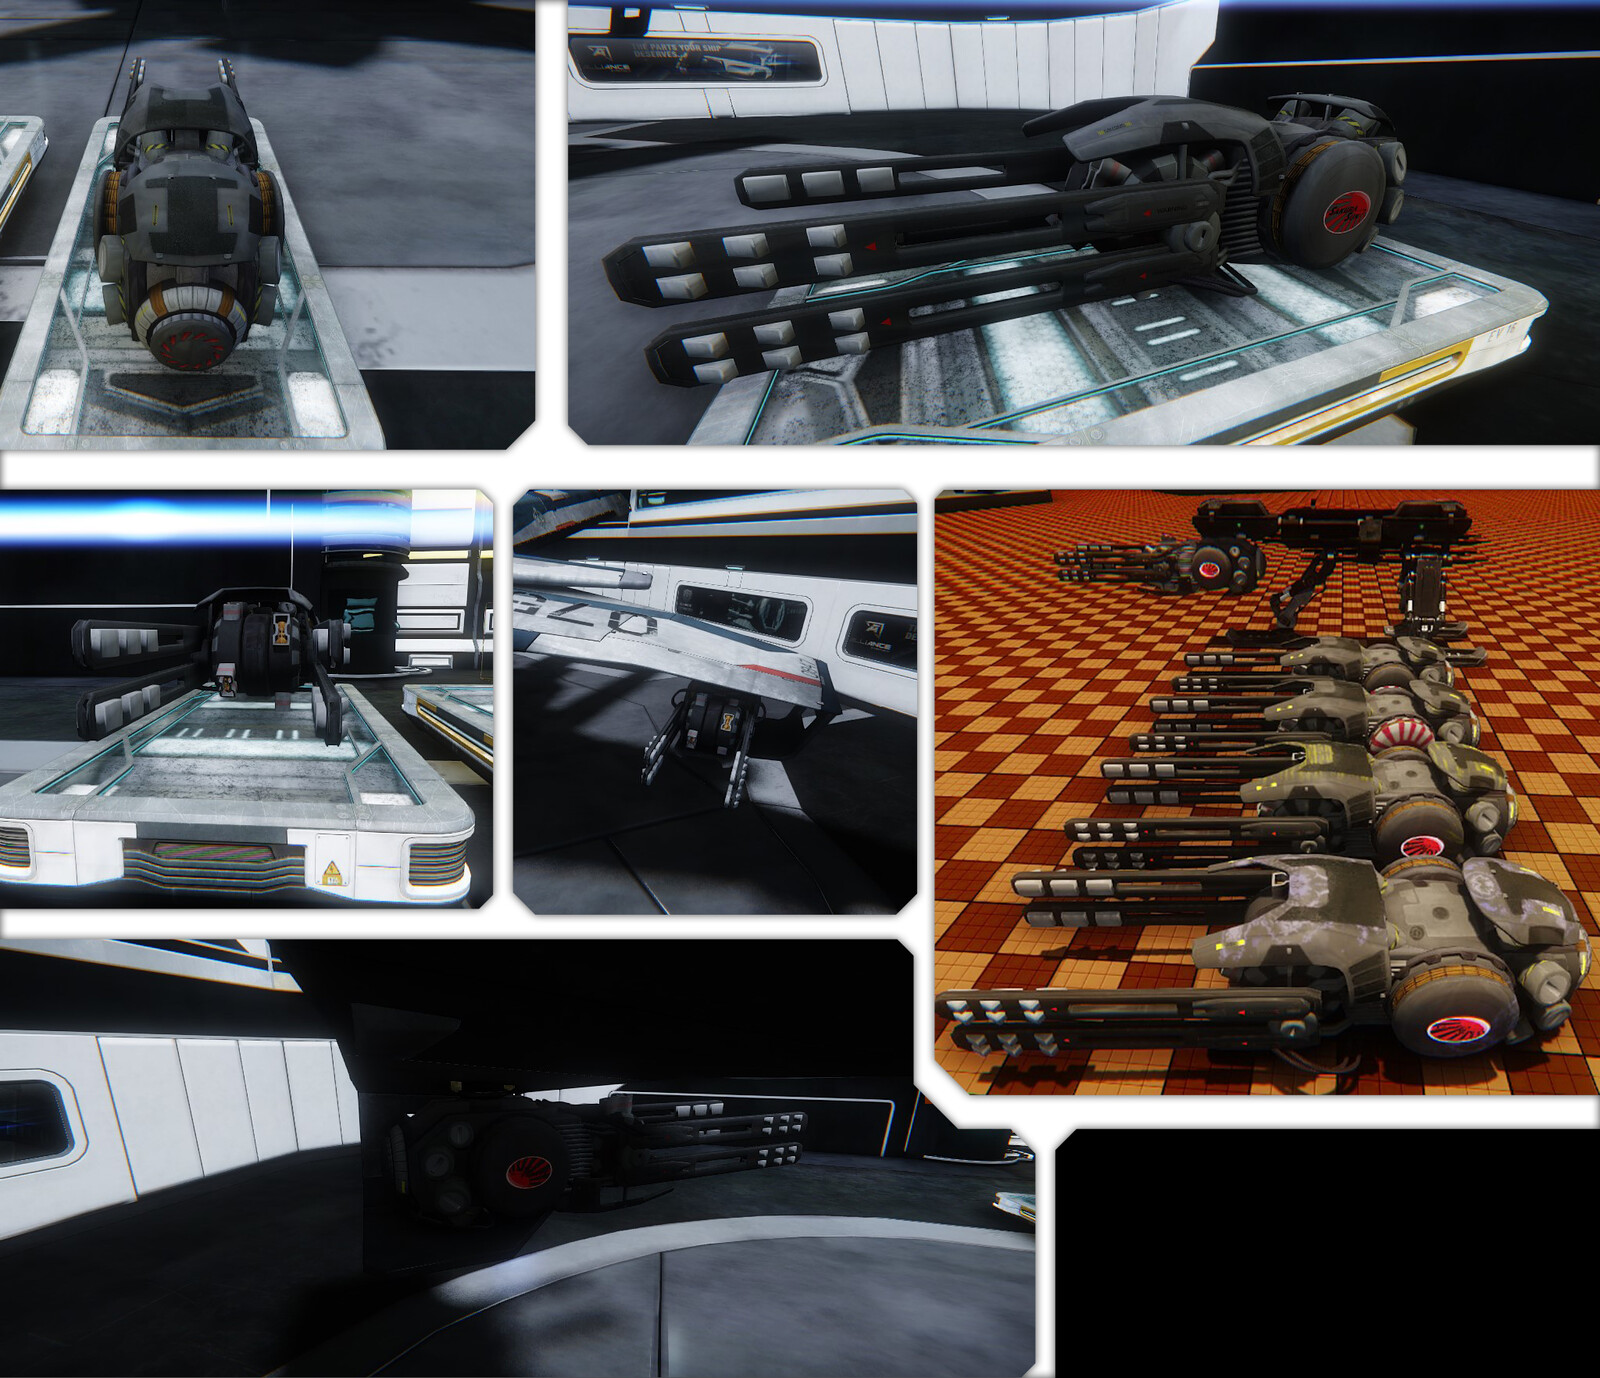 Pictures from in engine, this was shown to the judges along side our video.